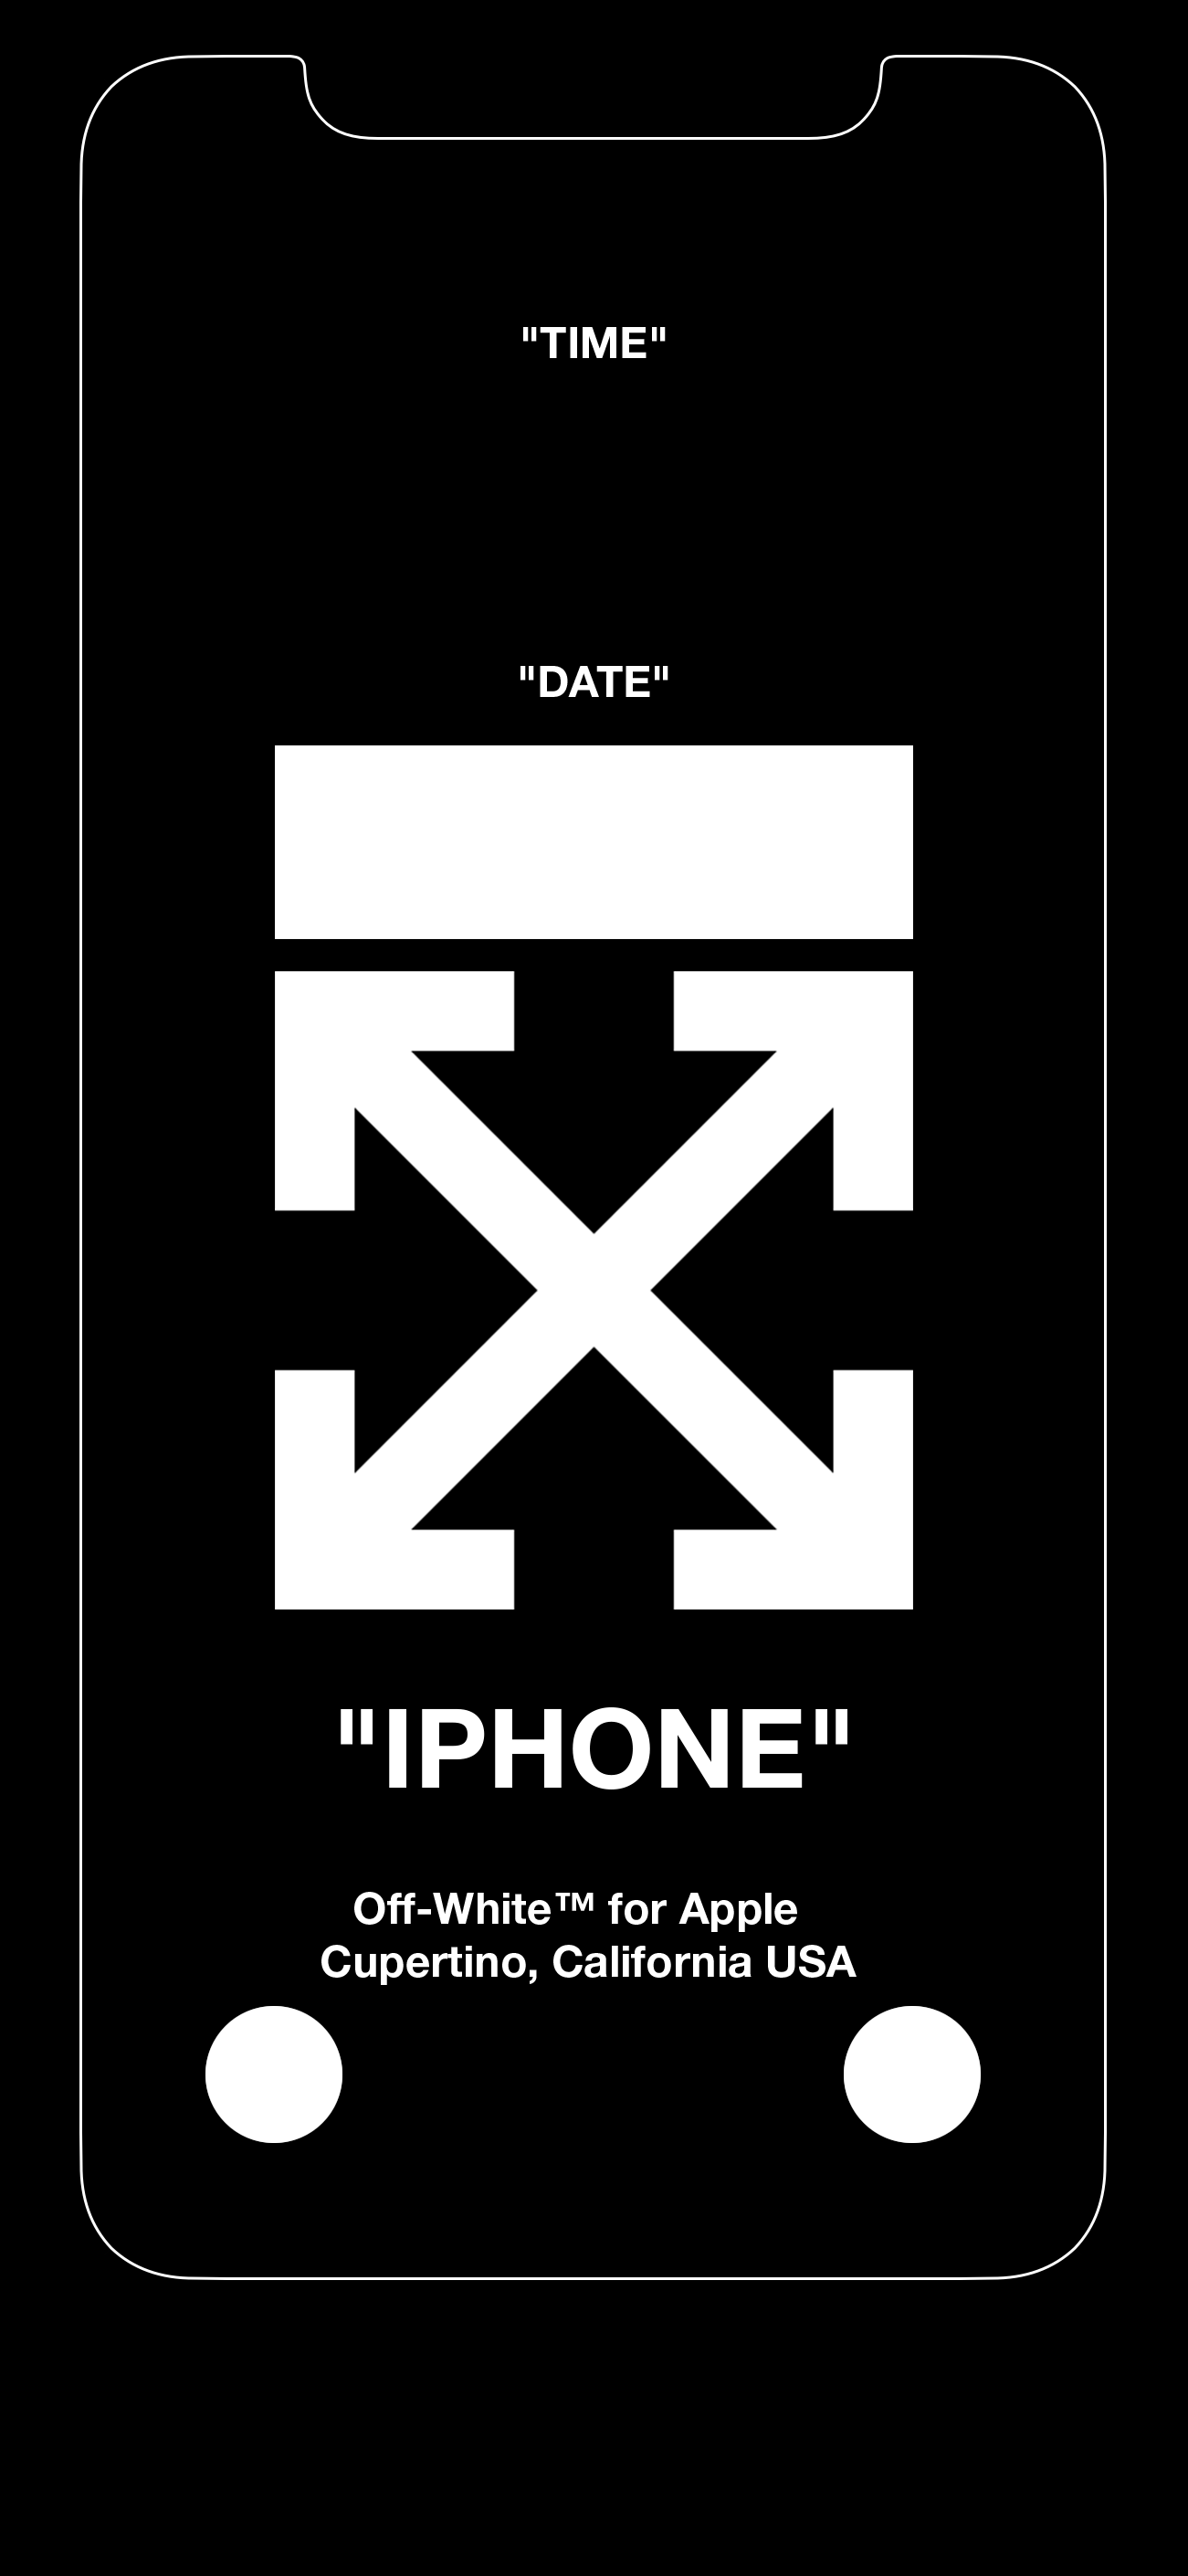 11 Nice Off White Wallpaper Iphone That Have An Looks Hypebeast Wallpaper Hypebeast Iphone Wallpaper White Wallpaper For Iphone